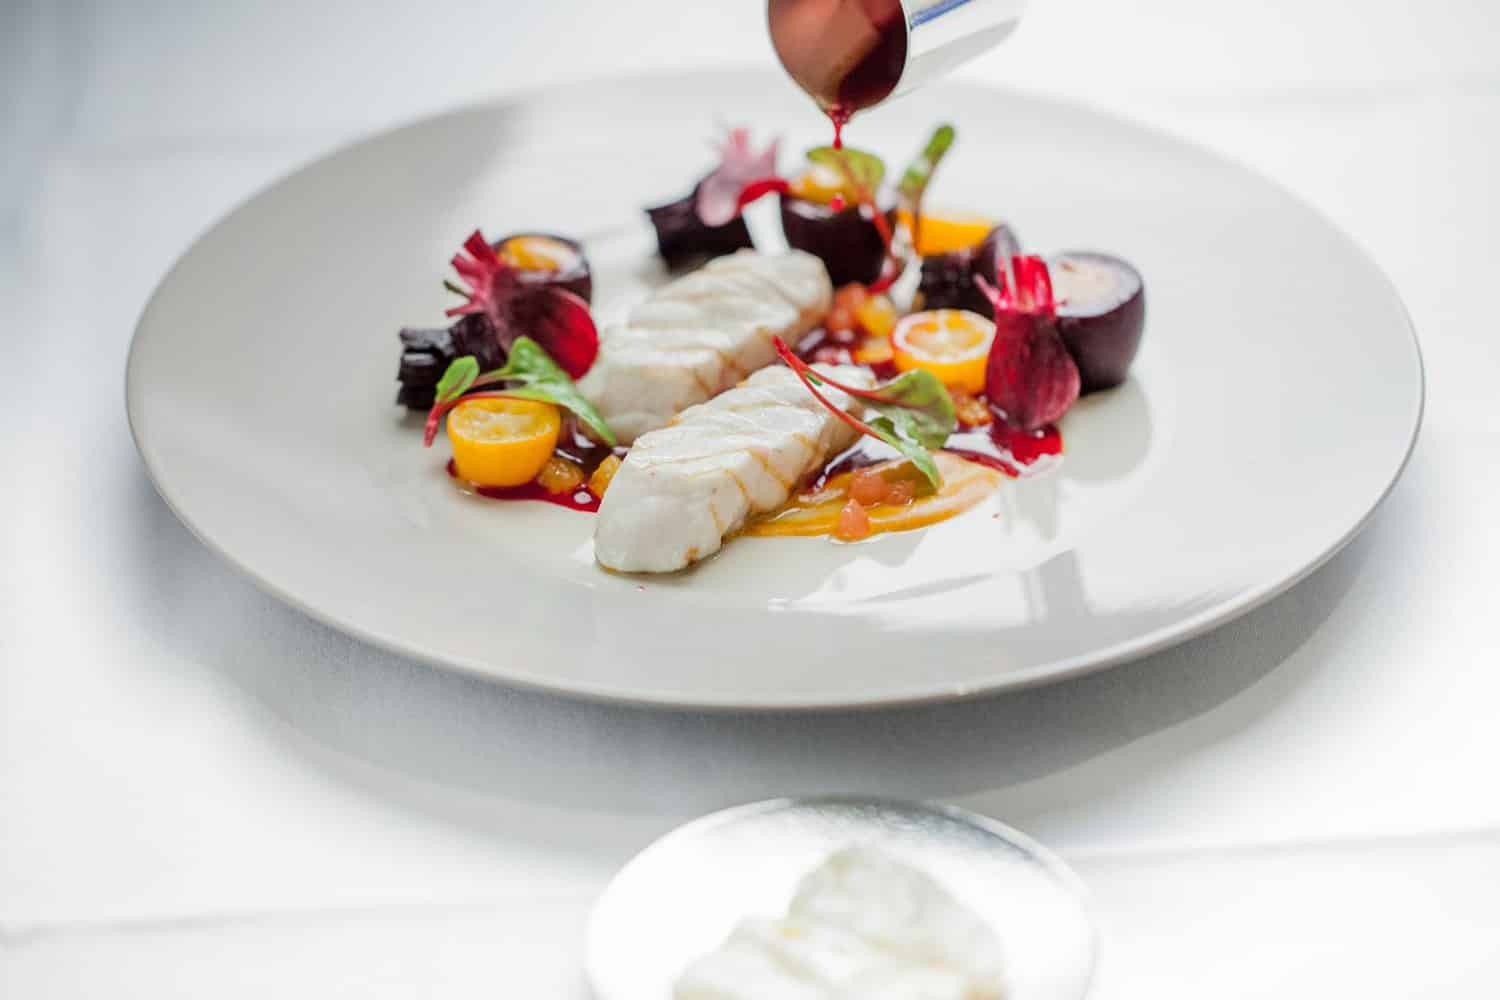 Course served by Chef Alain Ducasse at the restaurant Louis XV